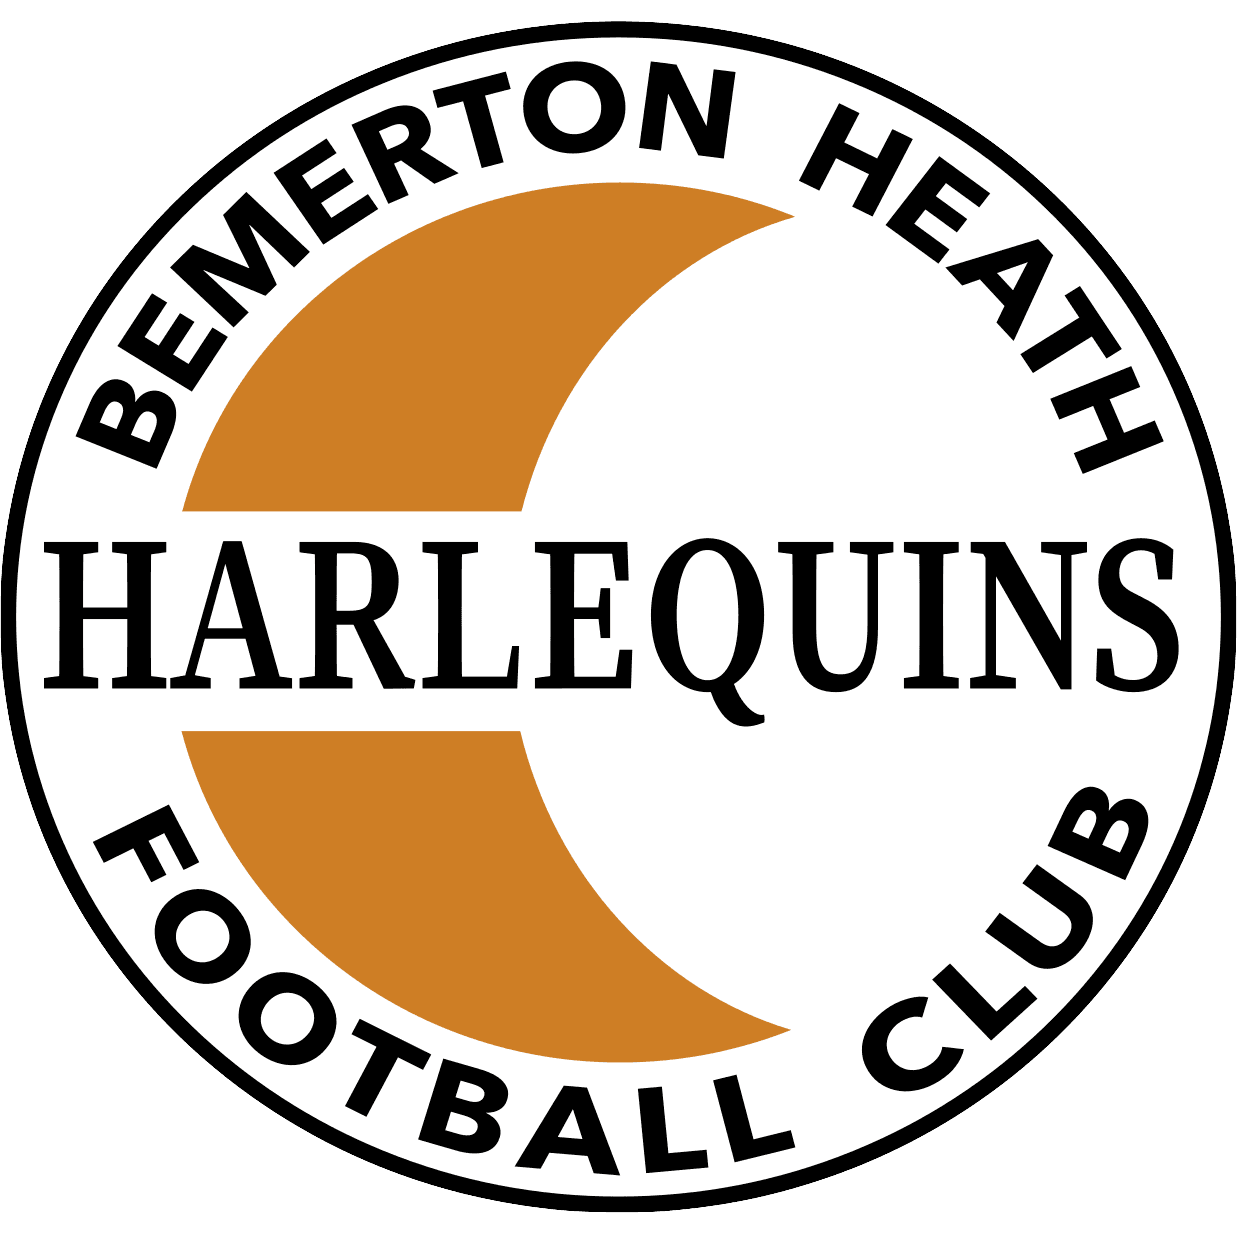 Bemerton Heath Harlequins Logo